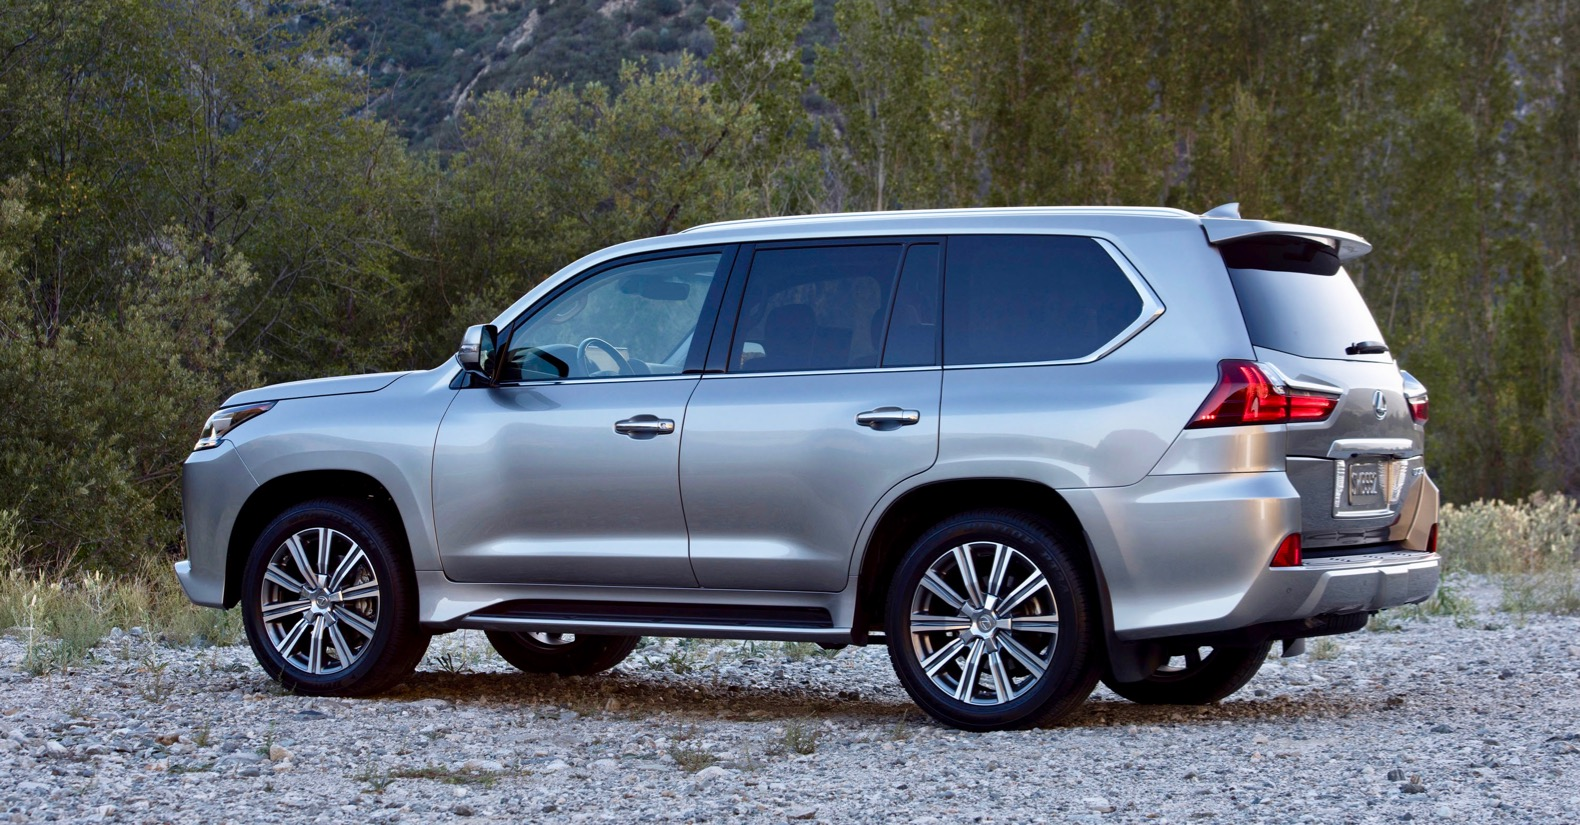 2019 Lexus LX 570 Review: A luxurious, old-school off-roader | The